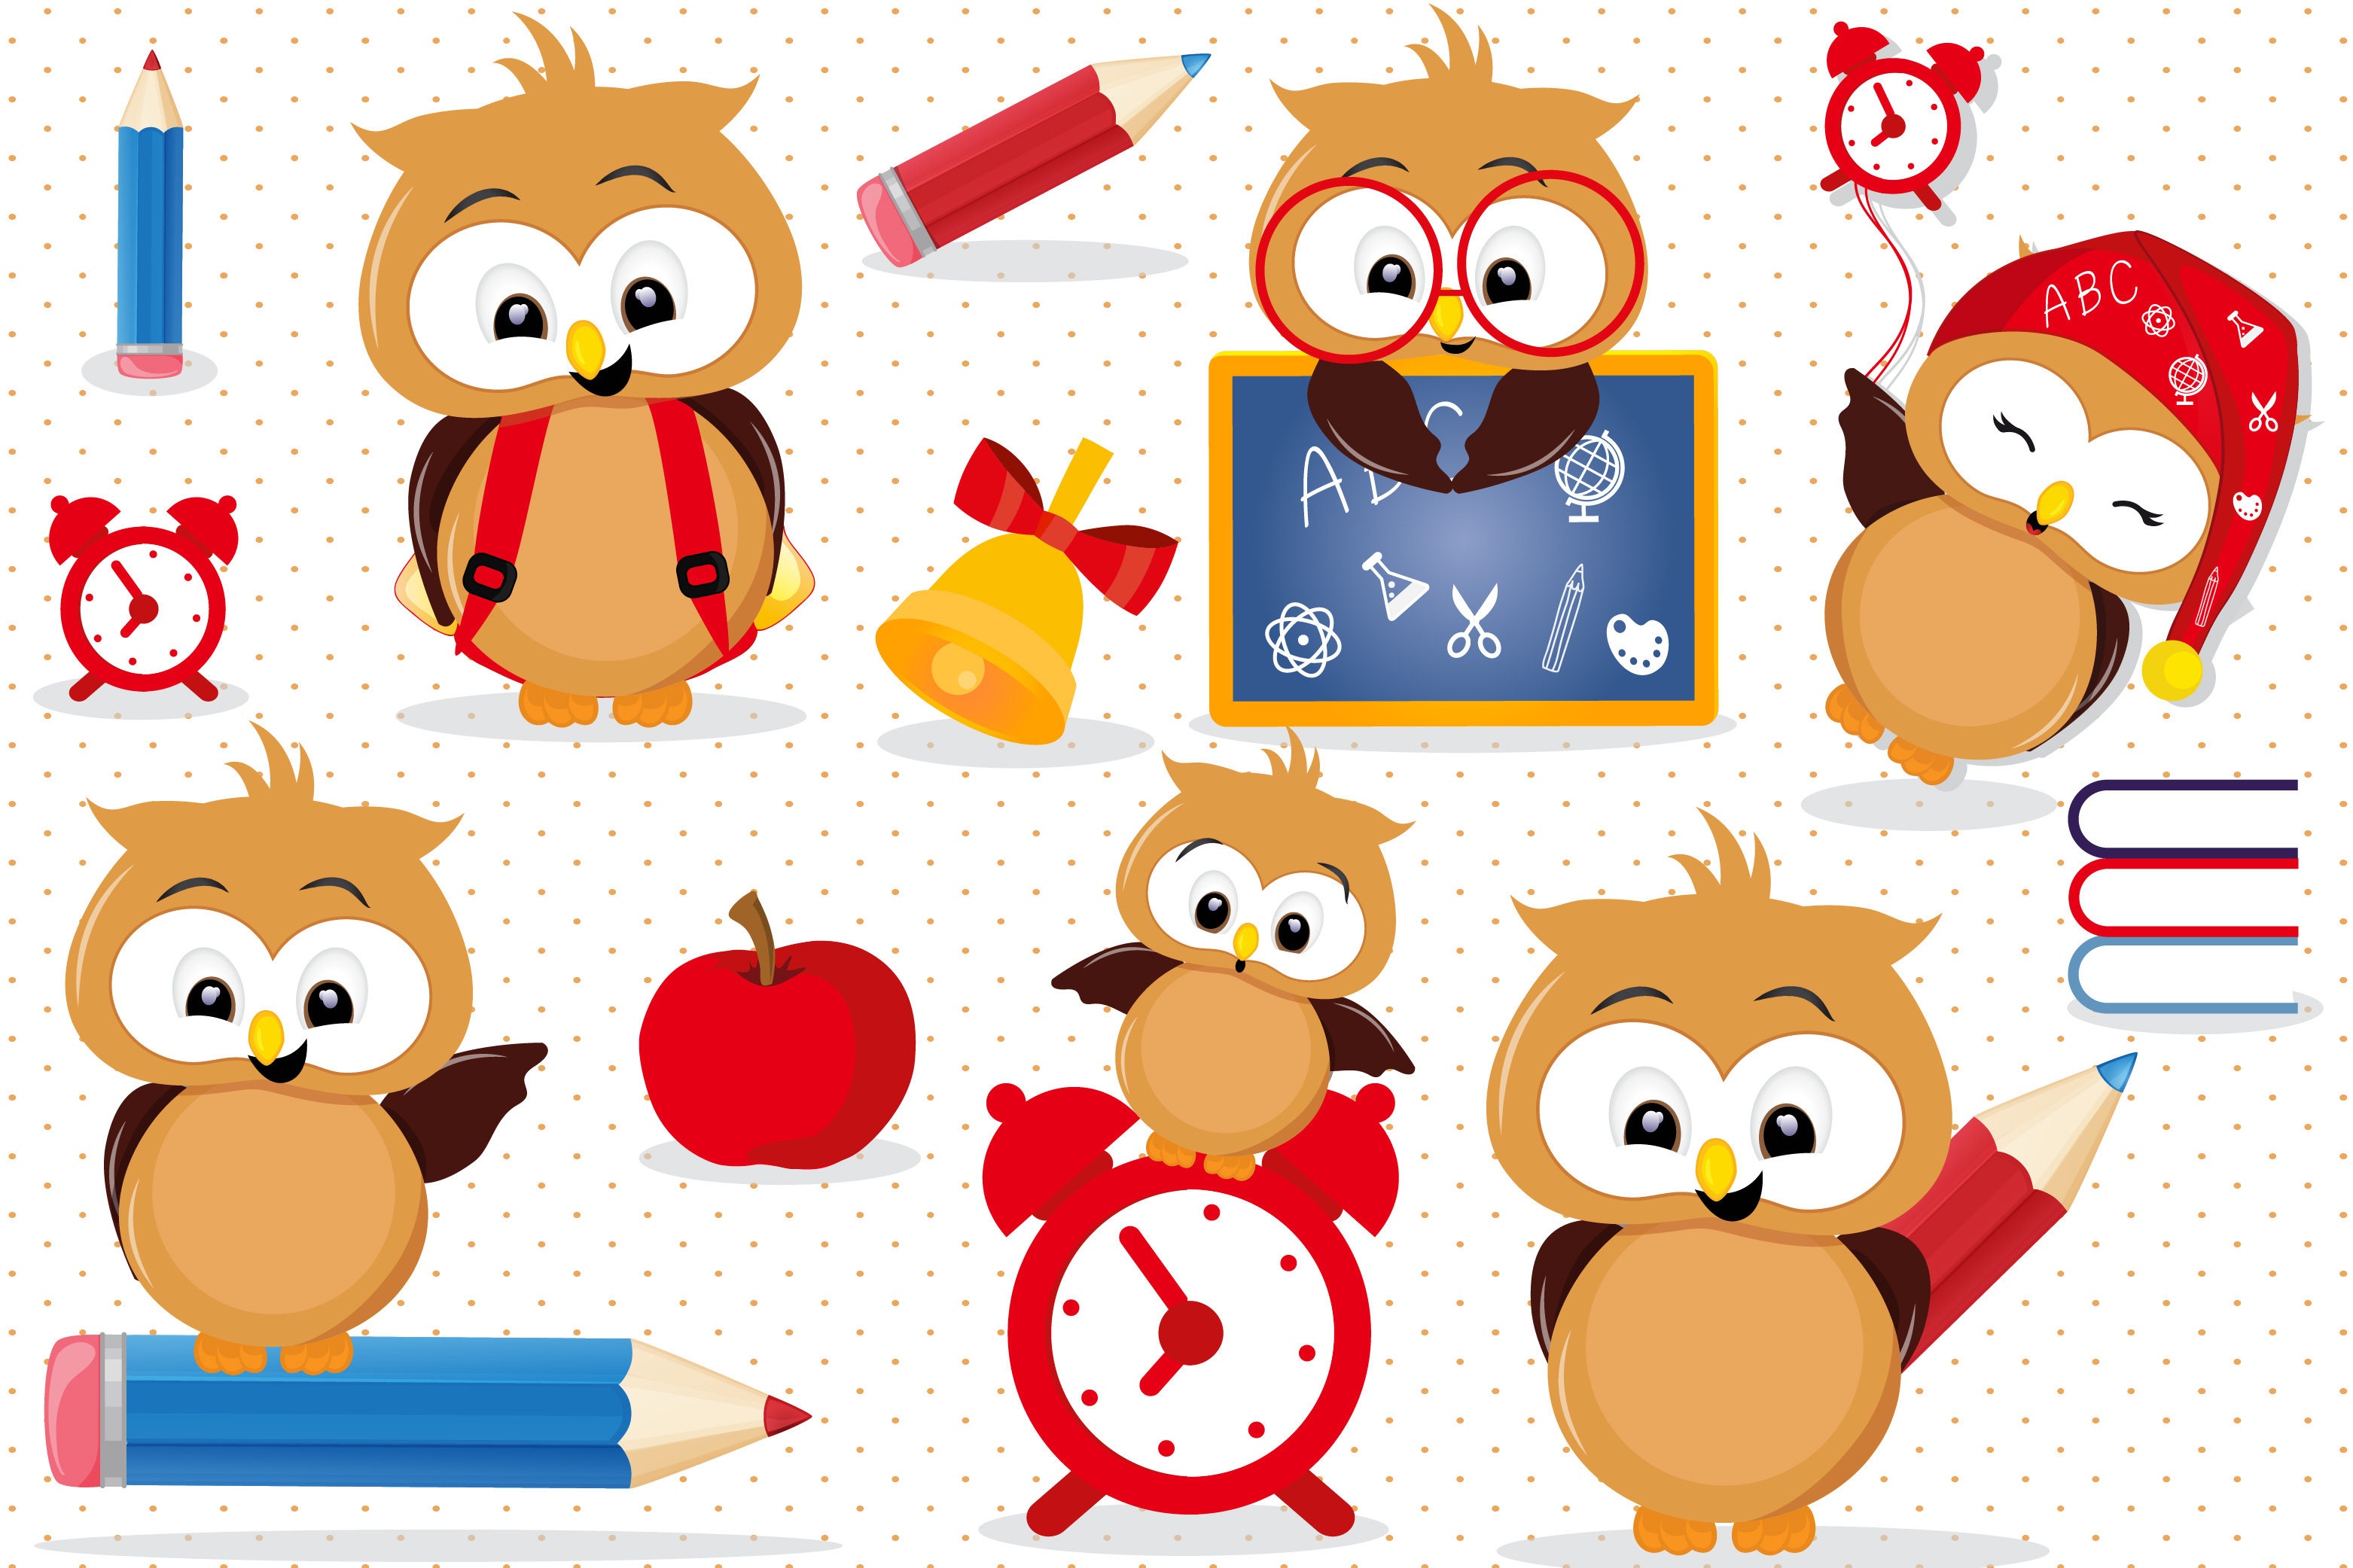 School animal clipart image free stock Back to school Owls clipart, Back to school Owls graphics image free stock